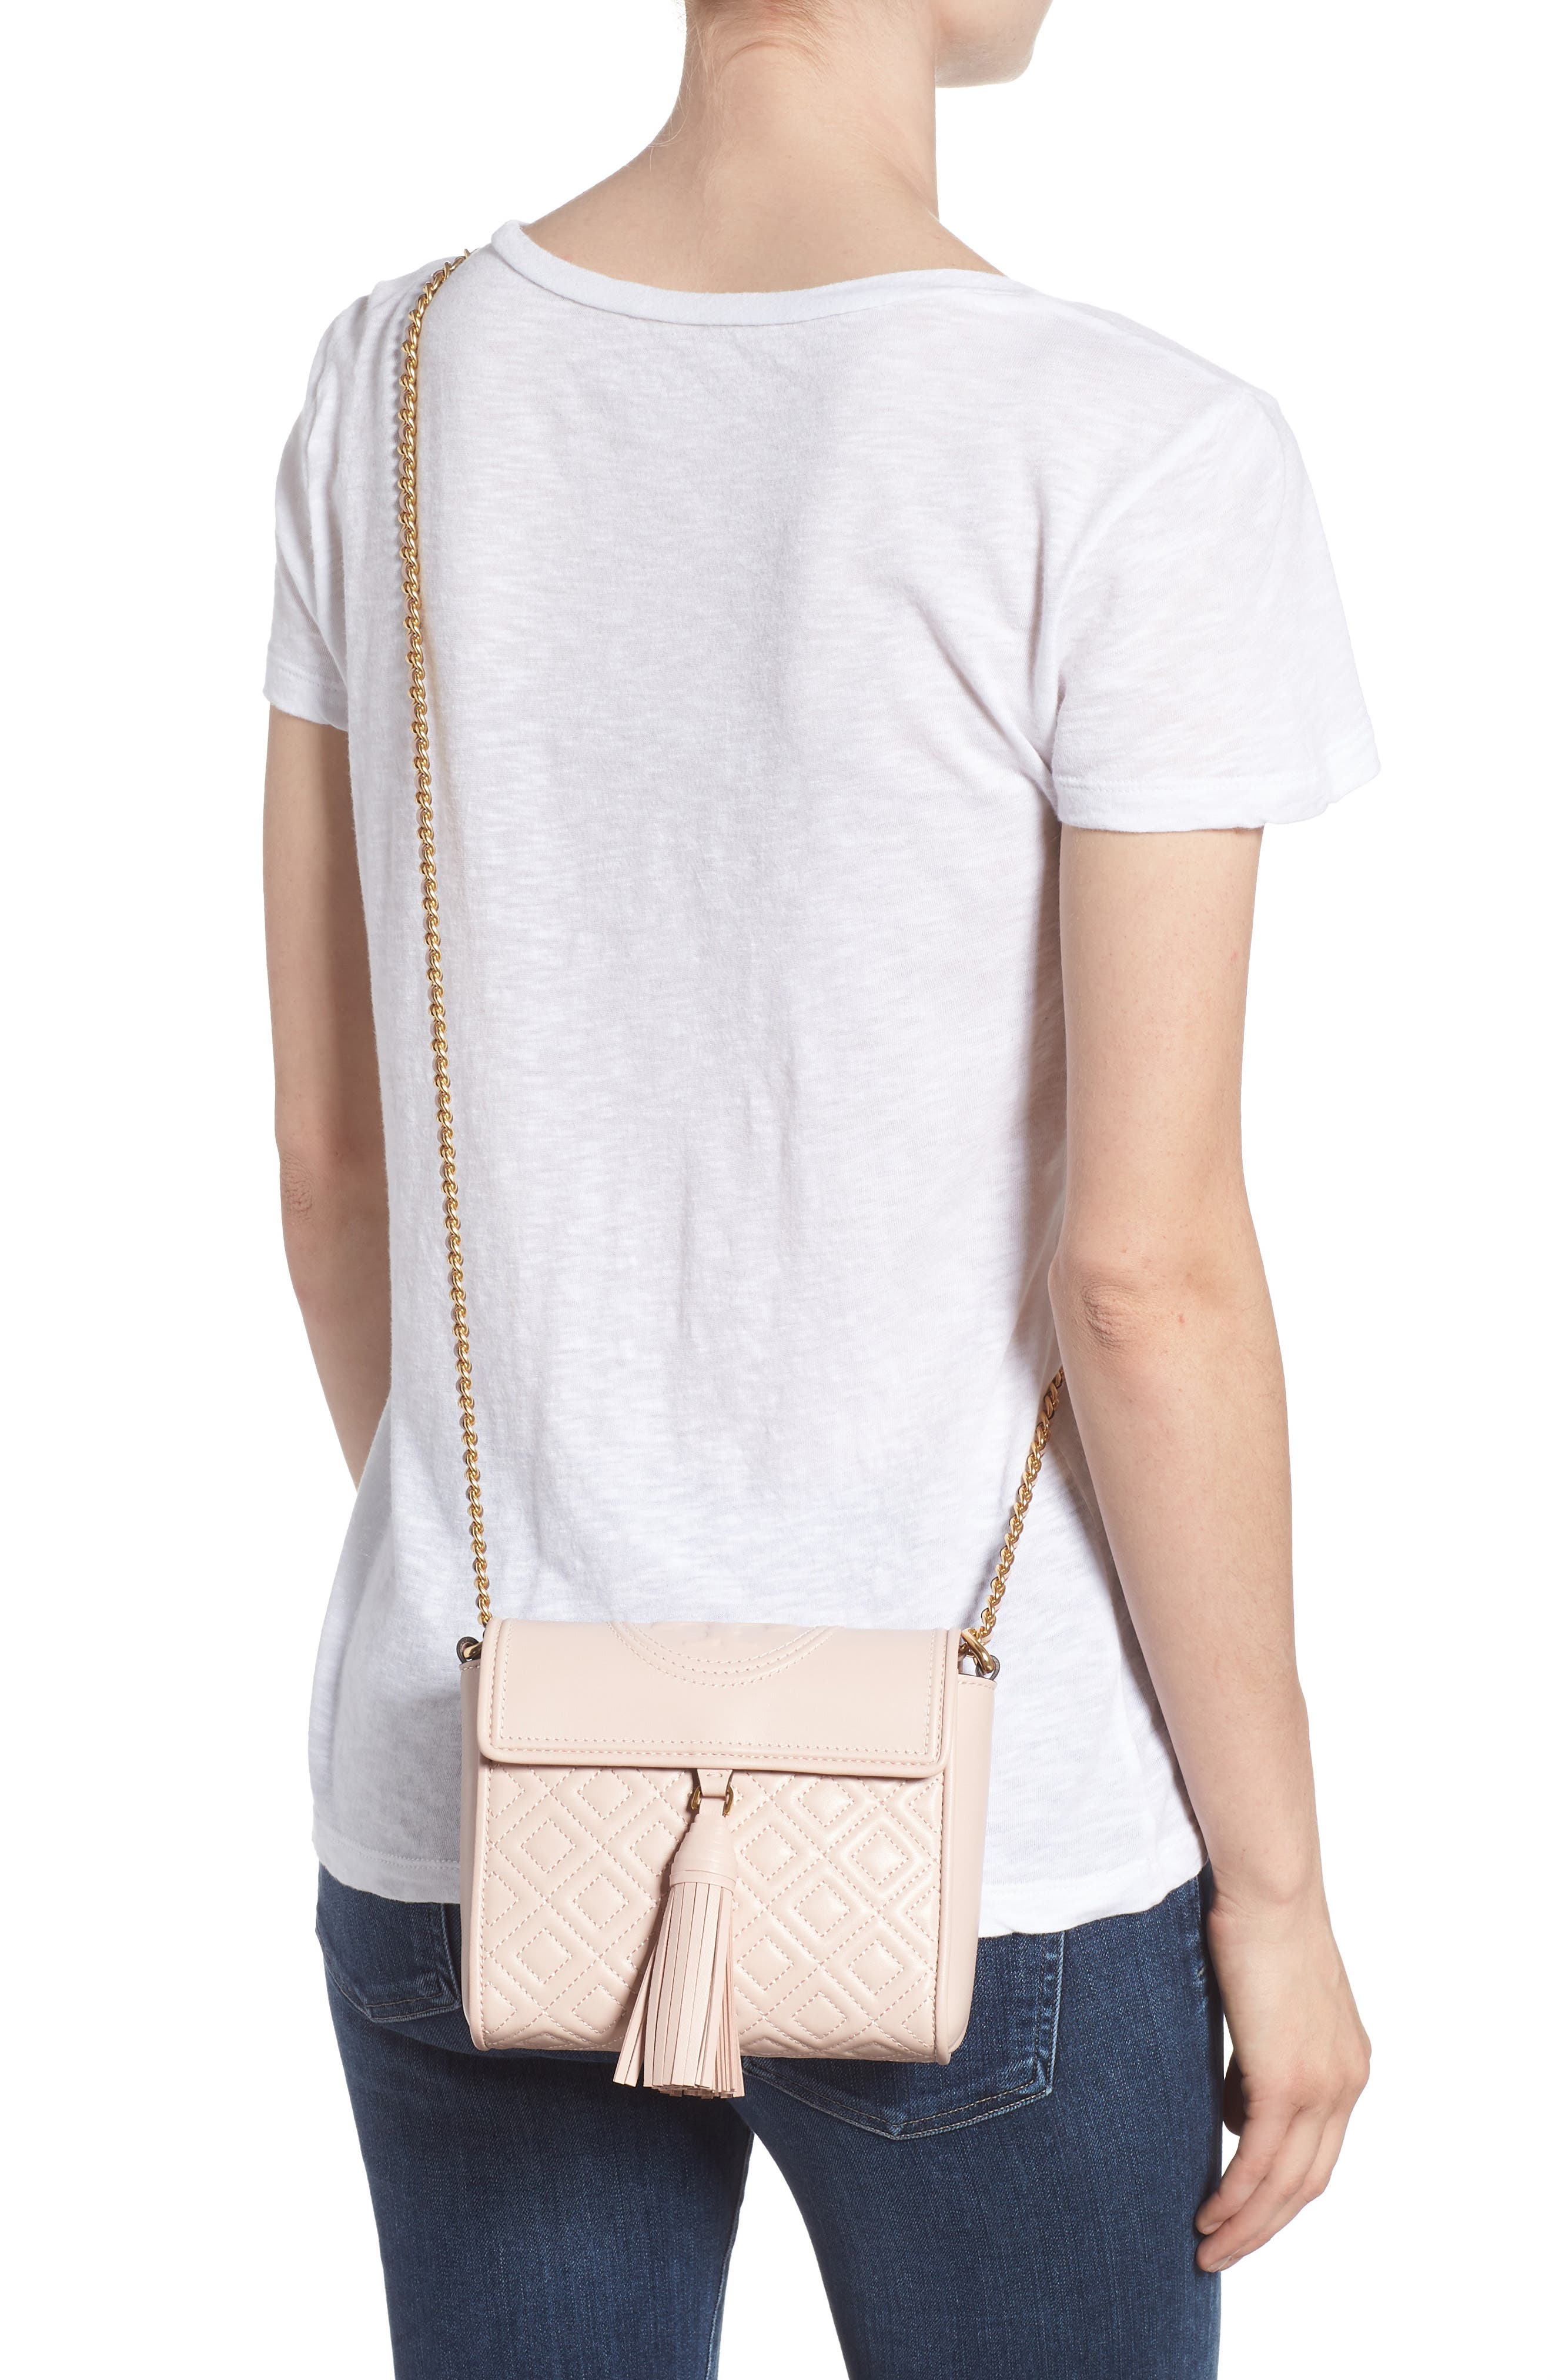 Fleming Quilted Leather Crossbody Bag,                             Alternate thumbnail 2, color,                             Shell Pink